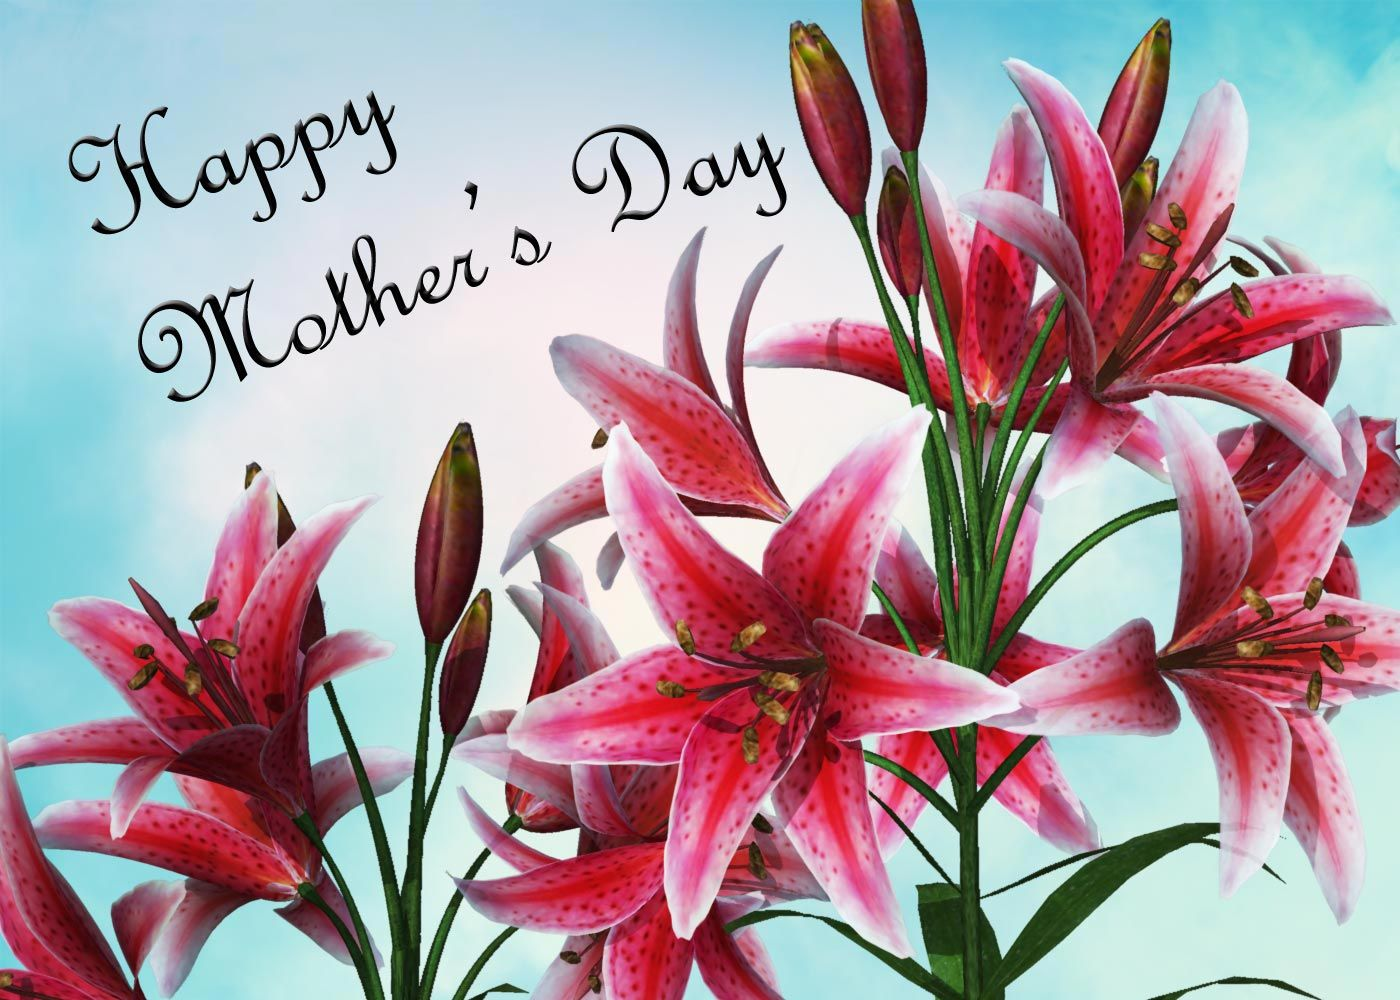 Top 10 cards for mother on mothers day httpmothersday123 top 10 cards for mother on mothers day httpmothersday123 kristyandbryce Image collections